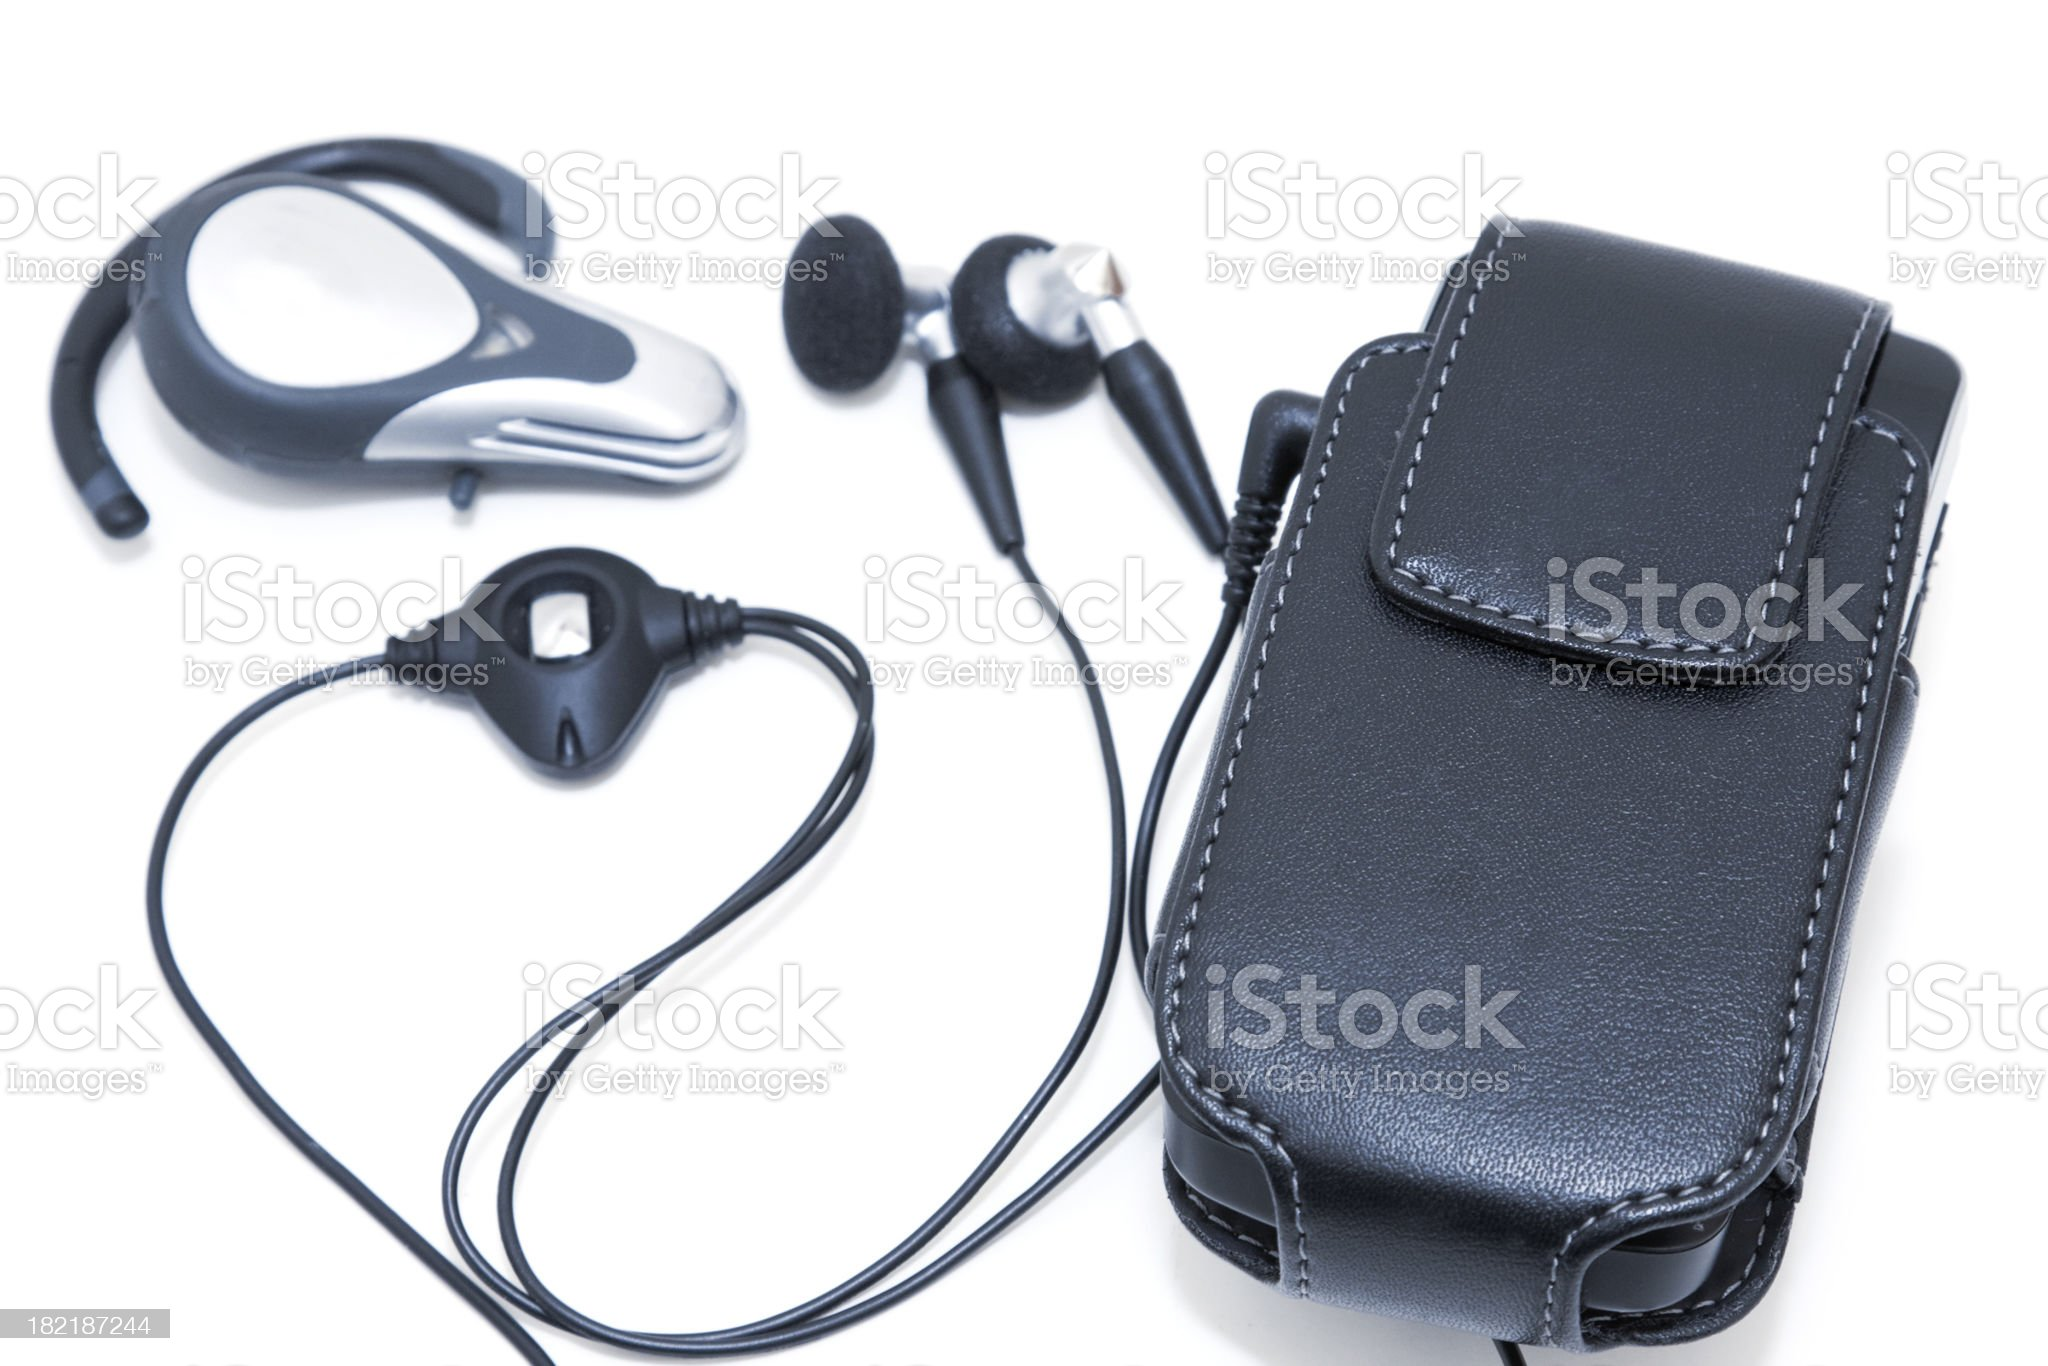 handsfree accessories royalty-free stock photo